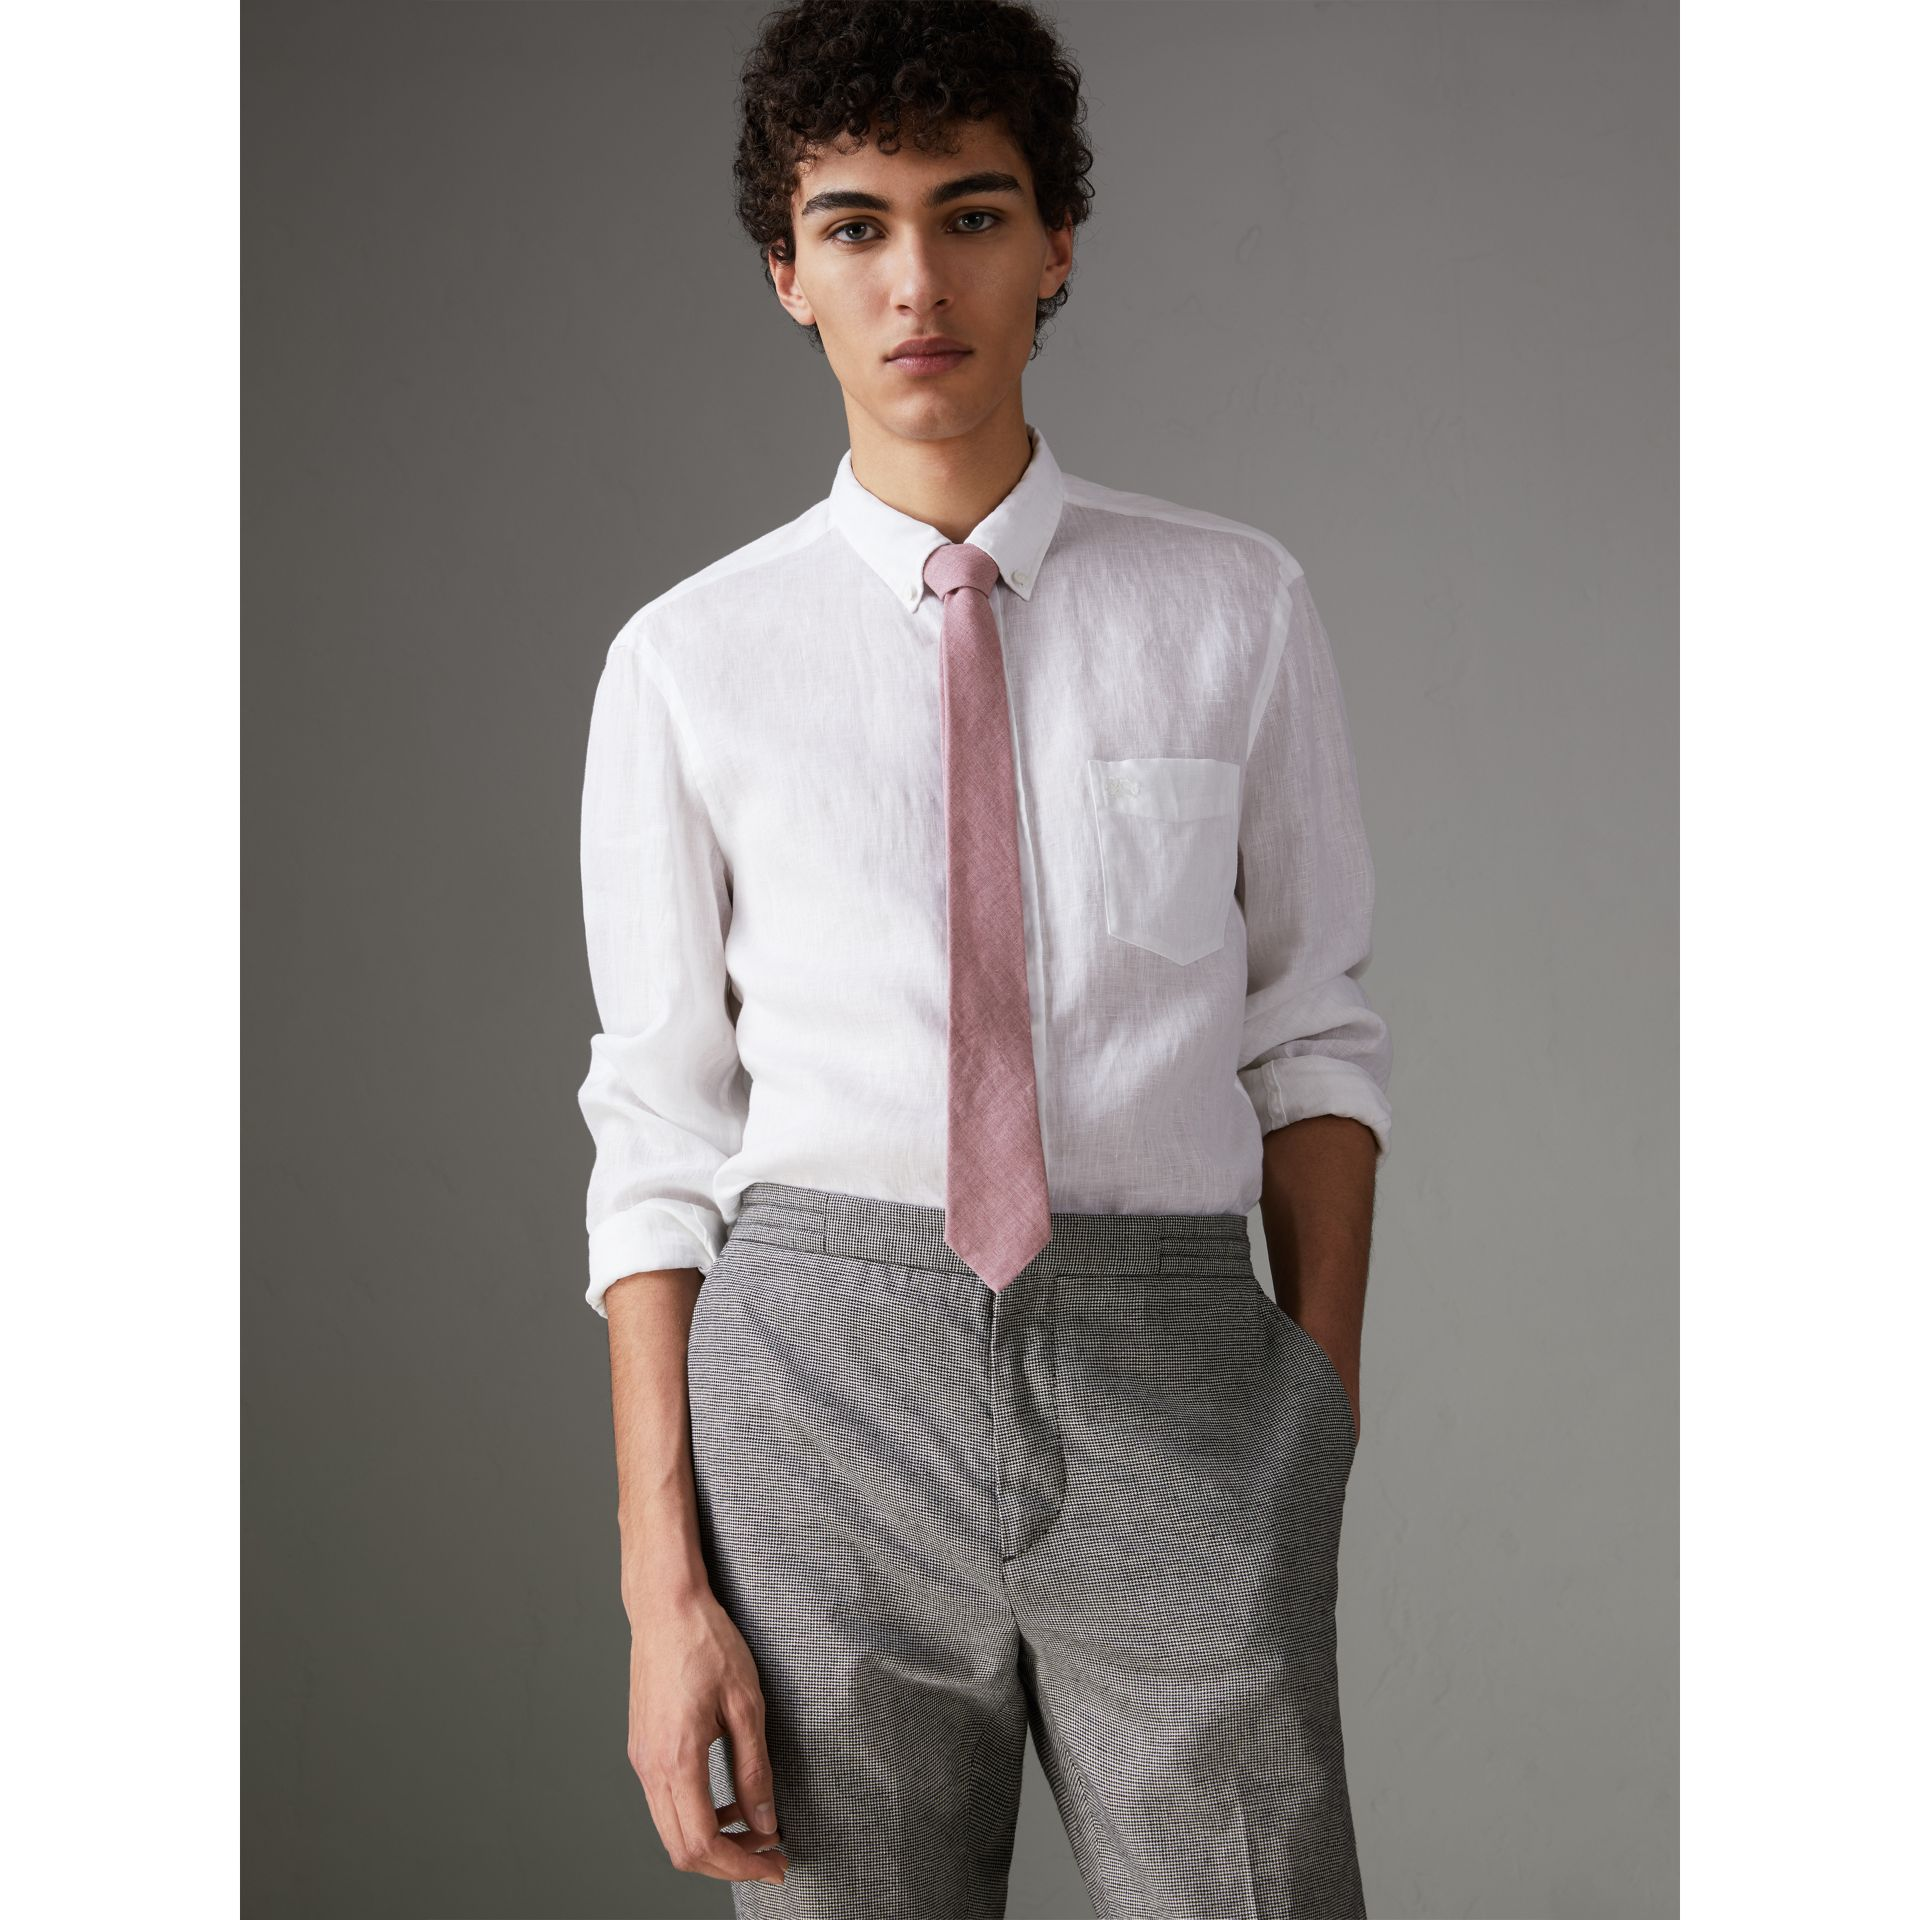 Slim Cut Linen Tie in Pink Heather - Men | Burberry Canada - gallery image 3